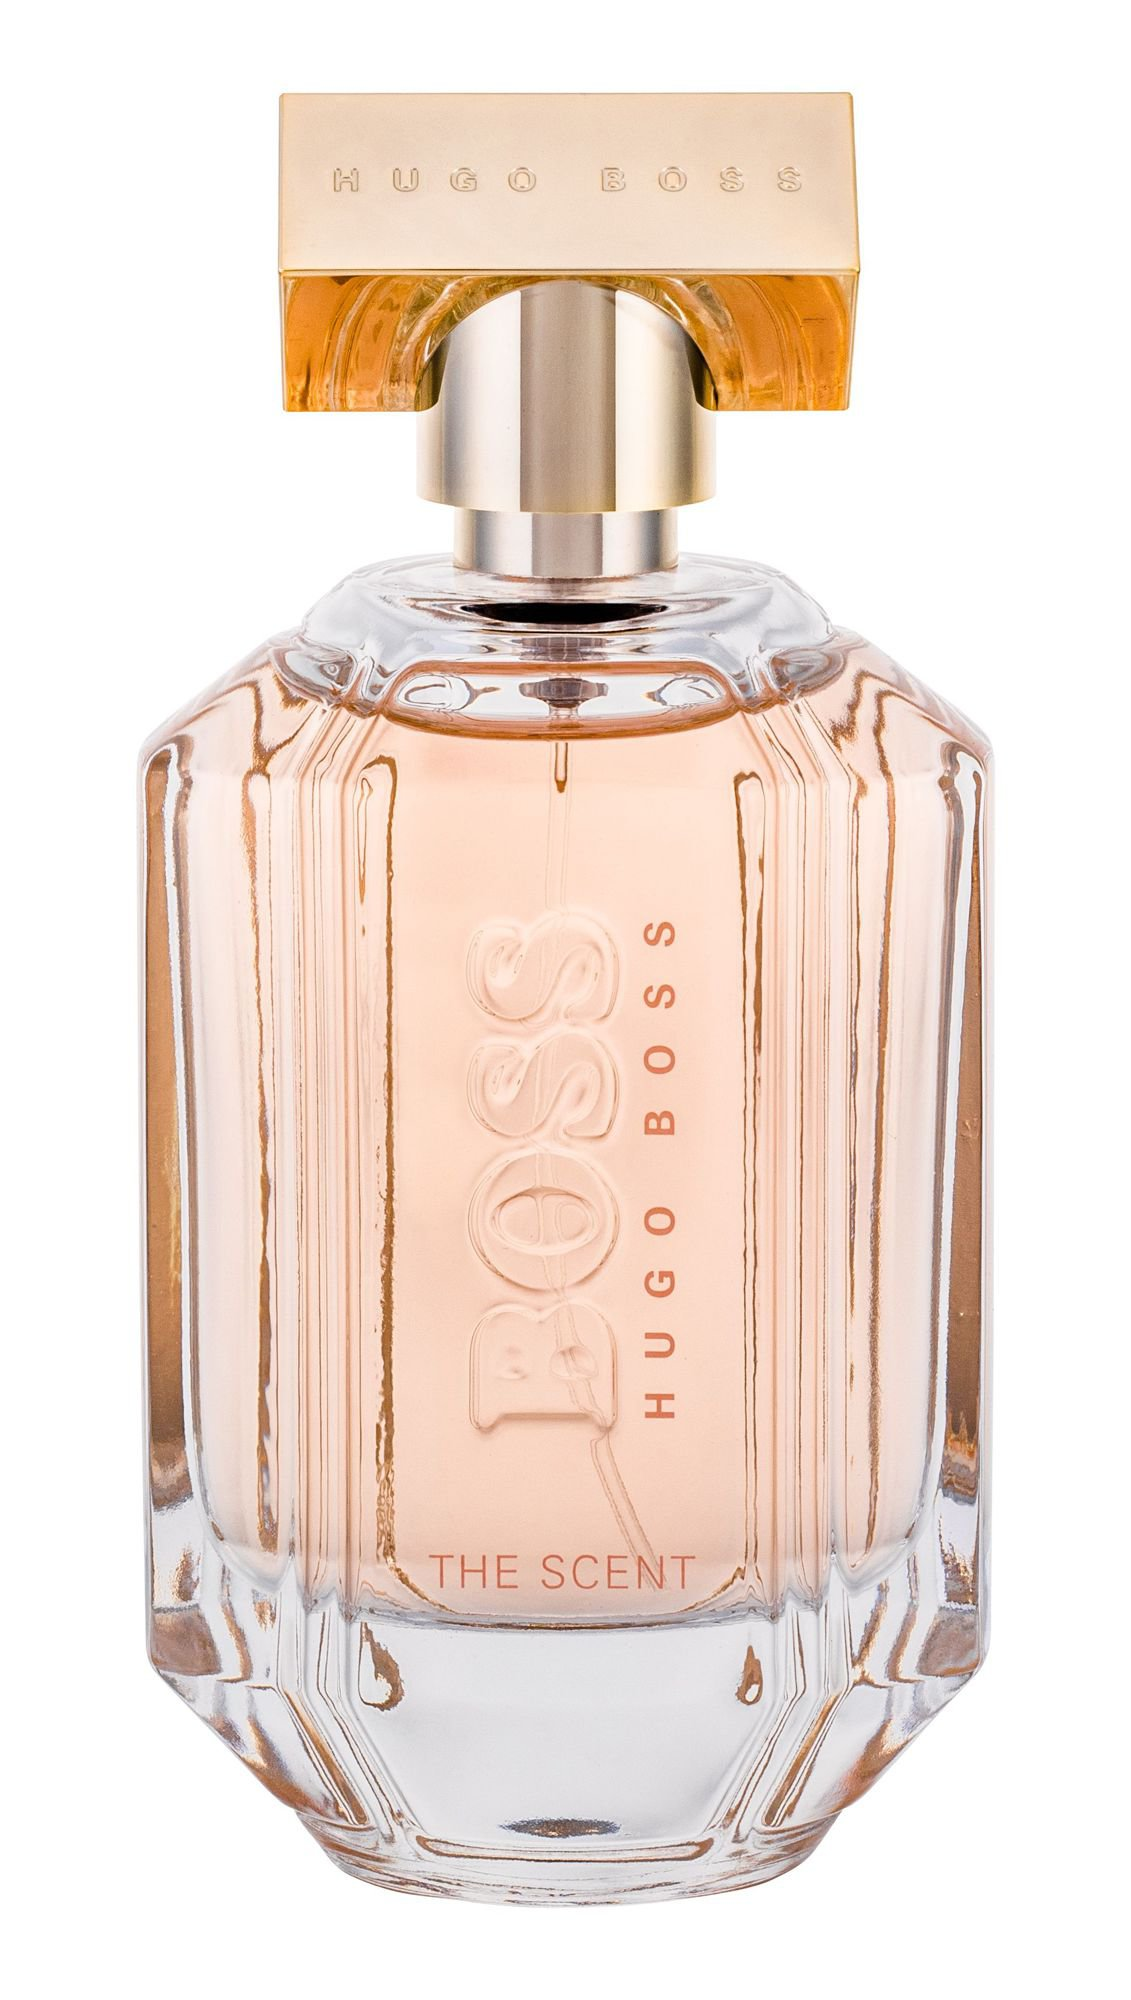 HUGO BOSS Boss The Scent For Her, Parfumovaná voda 100ml